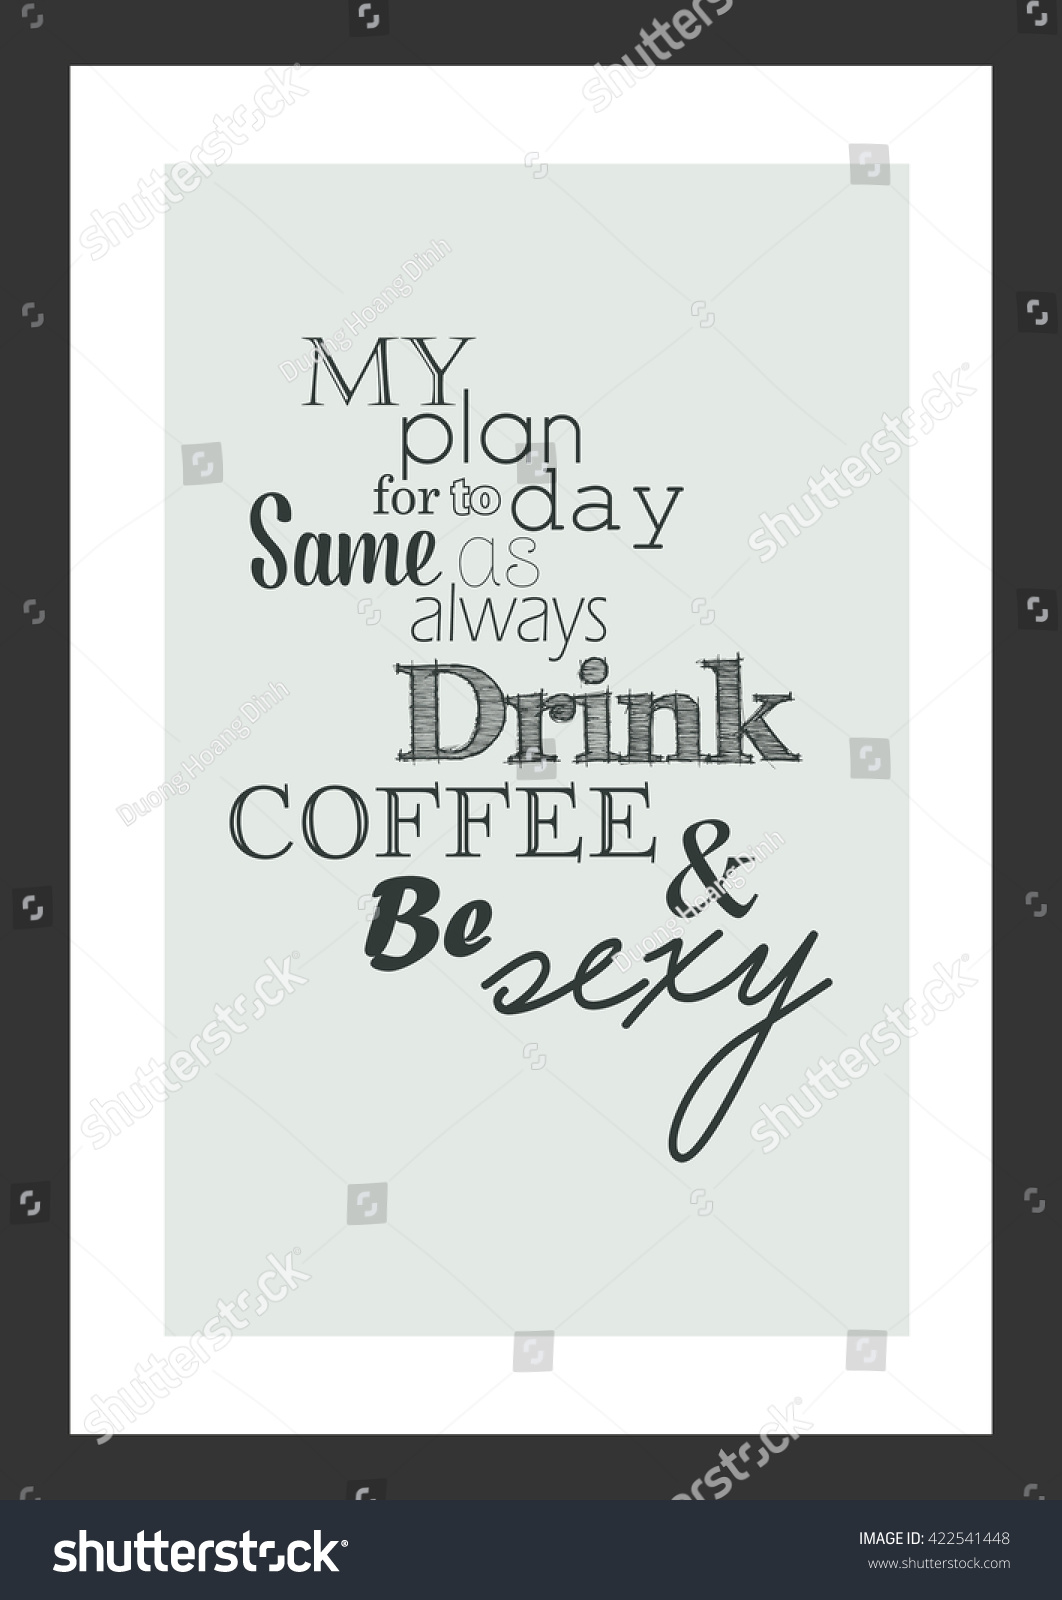 coffee quote plan today same always stock vector  my plan for today is the same as always drink coffee and